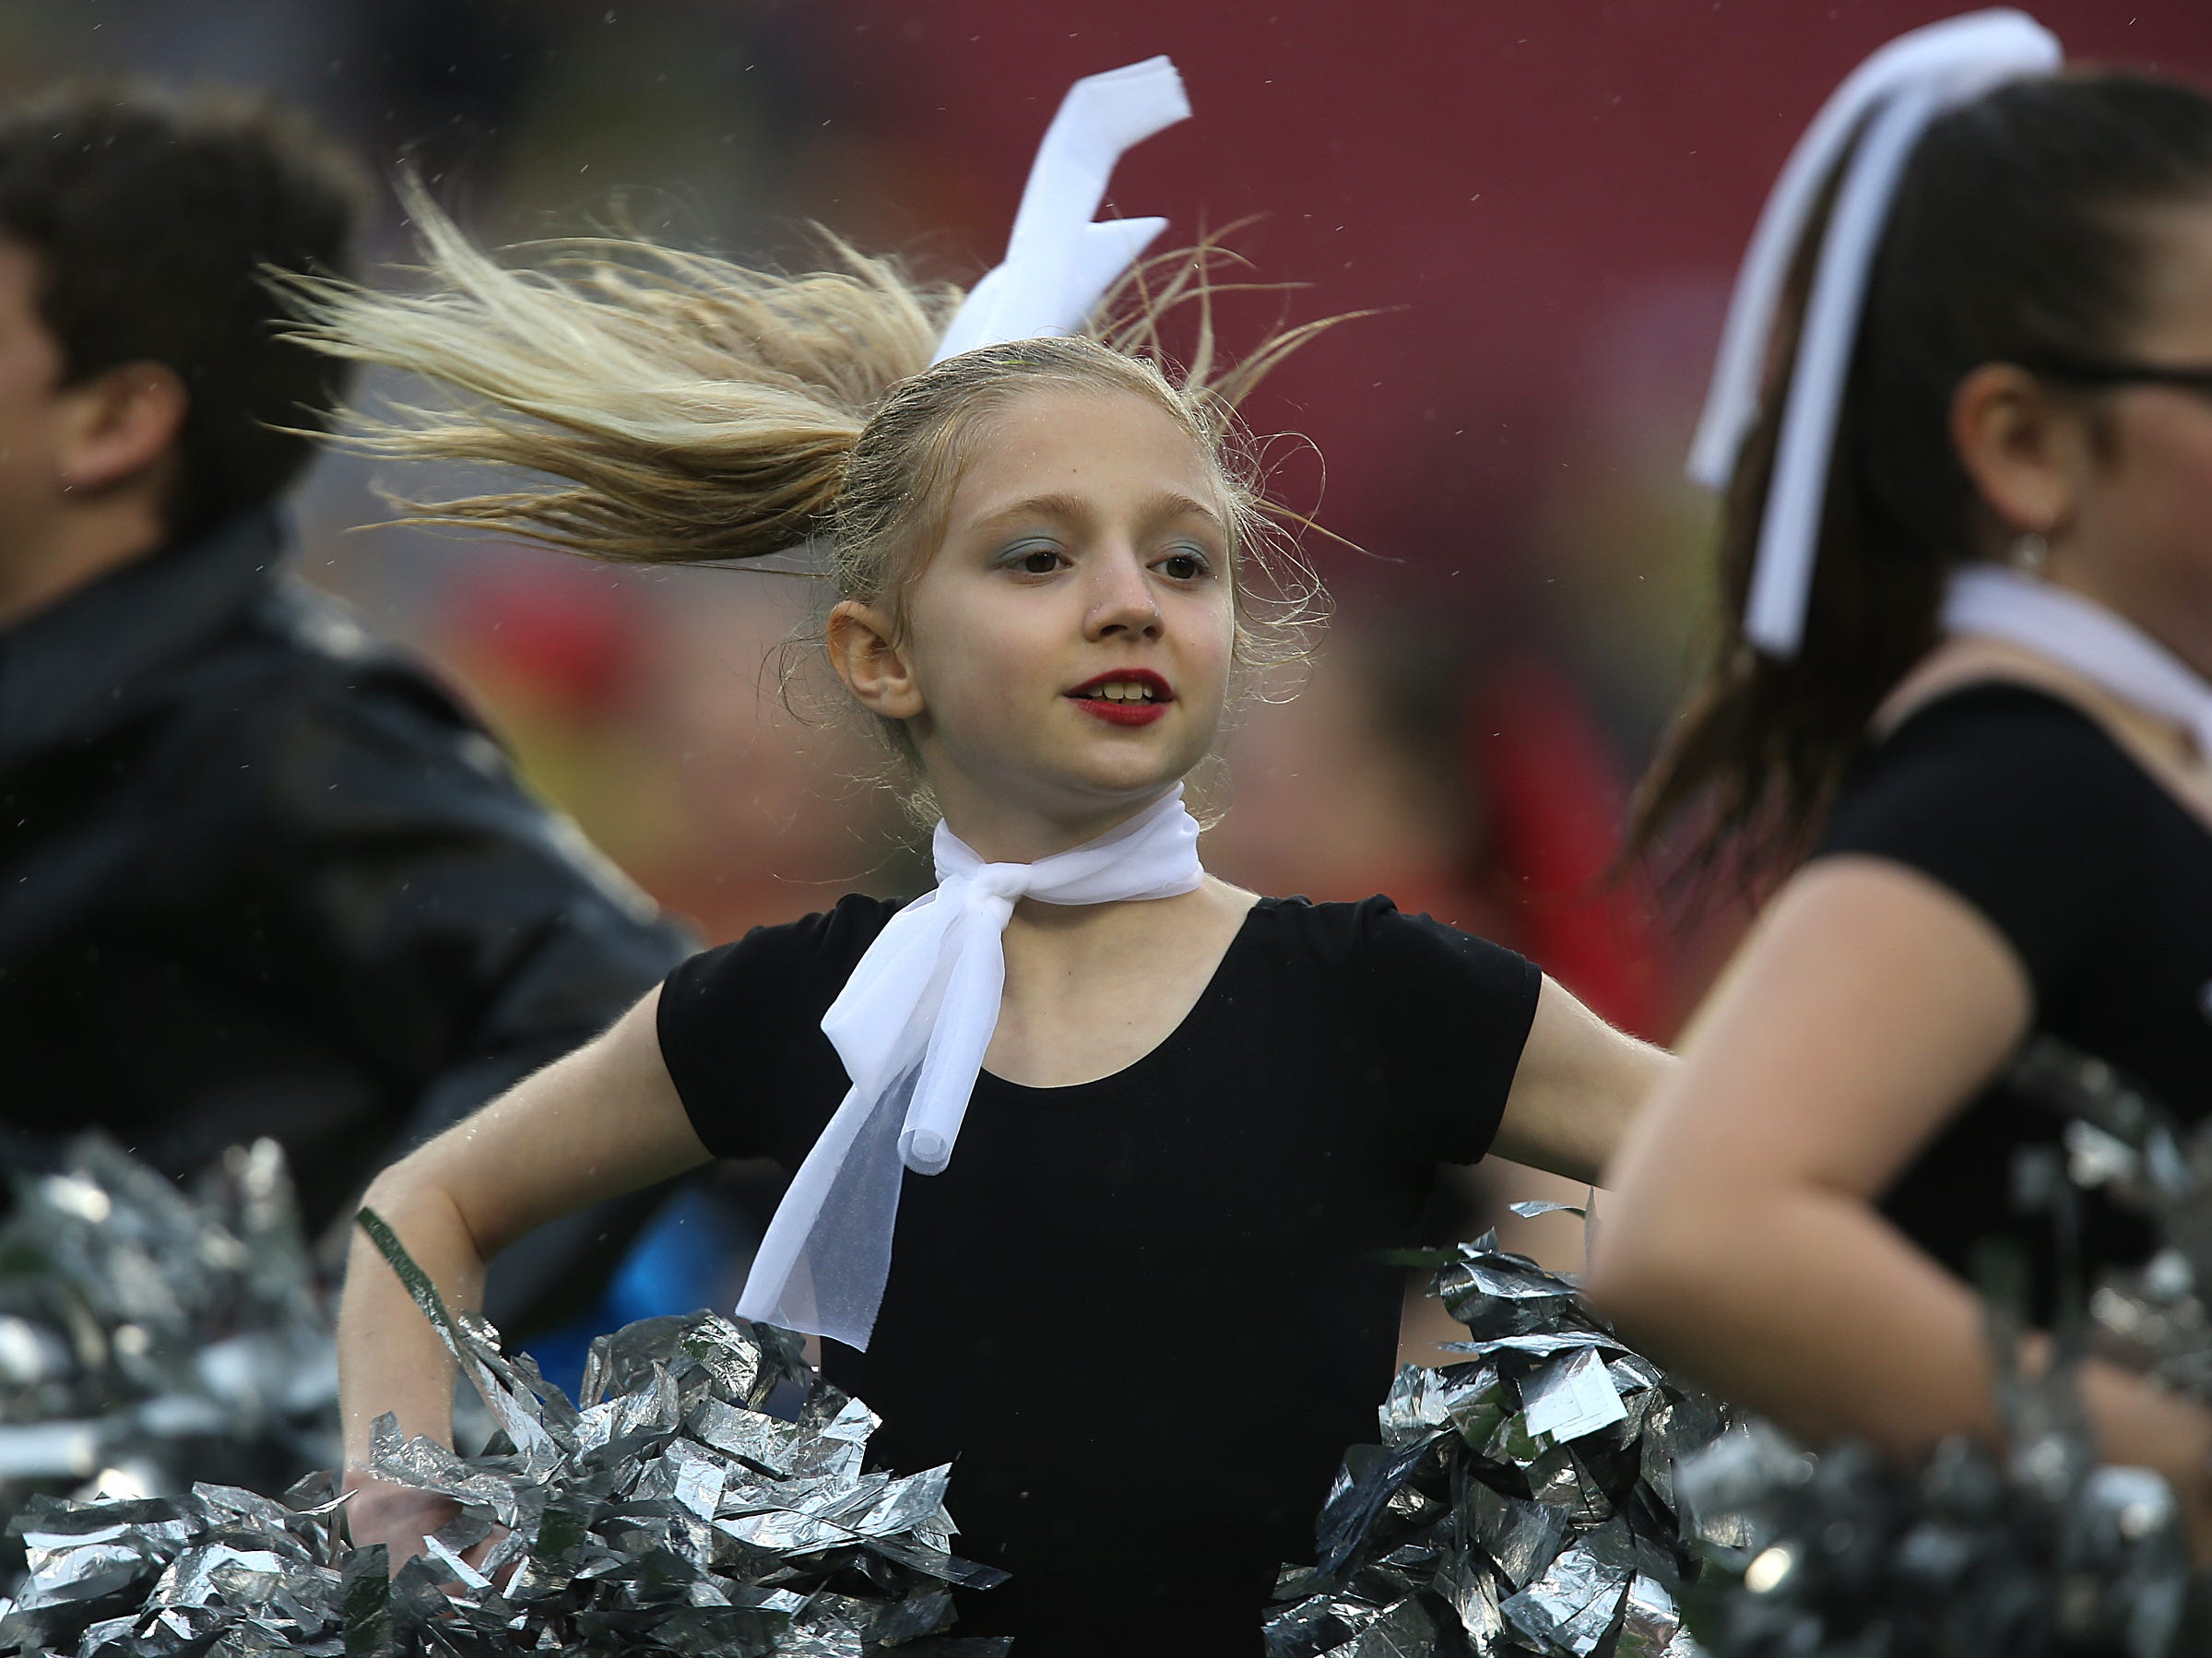 Amanda Schuessler, 10, of Osage, performs a dance routine during the pre-game activities of the 2014 Outback Bowl on Wednesday, Jan. 1, 2014, in Tampa, Florida. (Bryon Houlgrave/The Register)